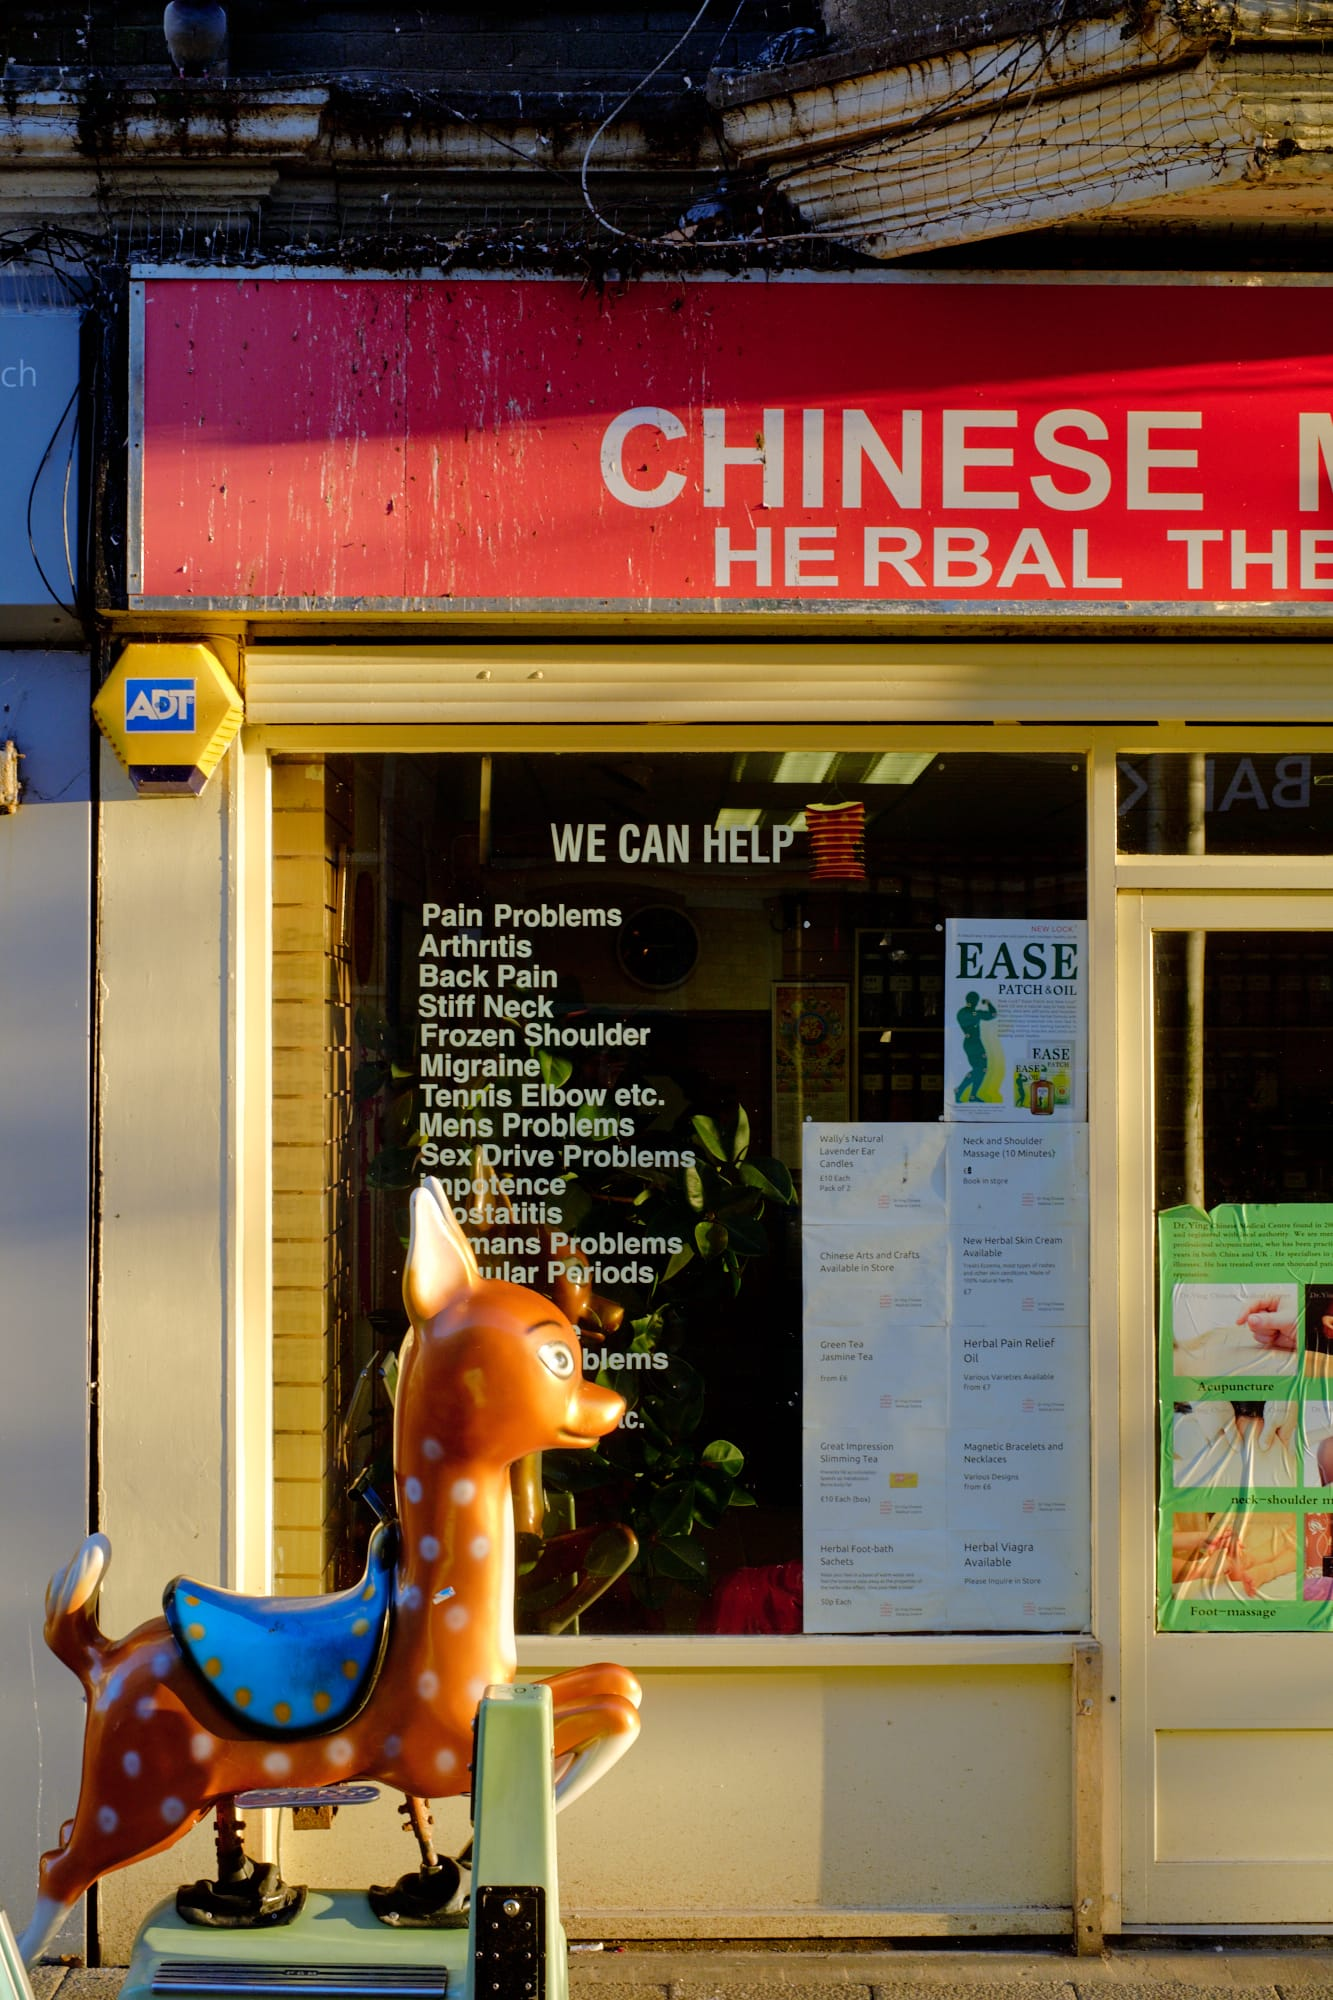 children's ride outside Chinese herbal medicine shop